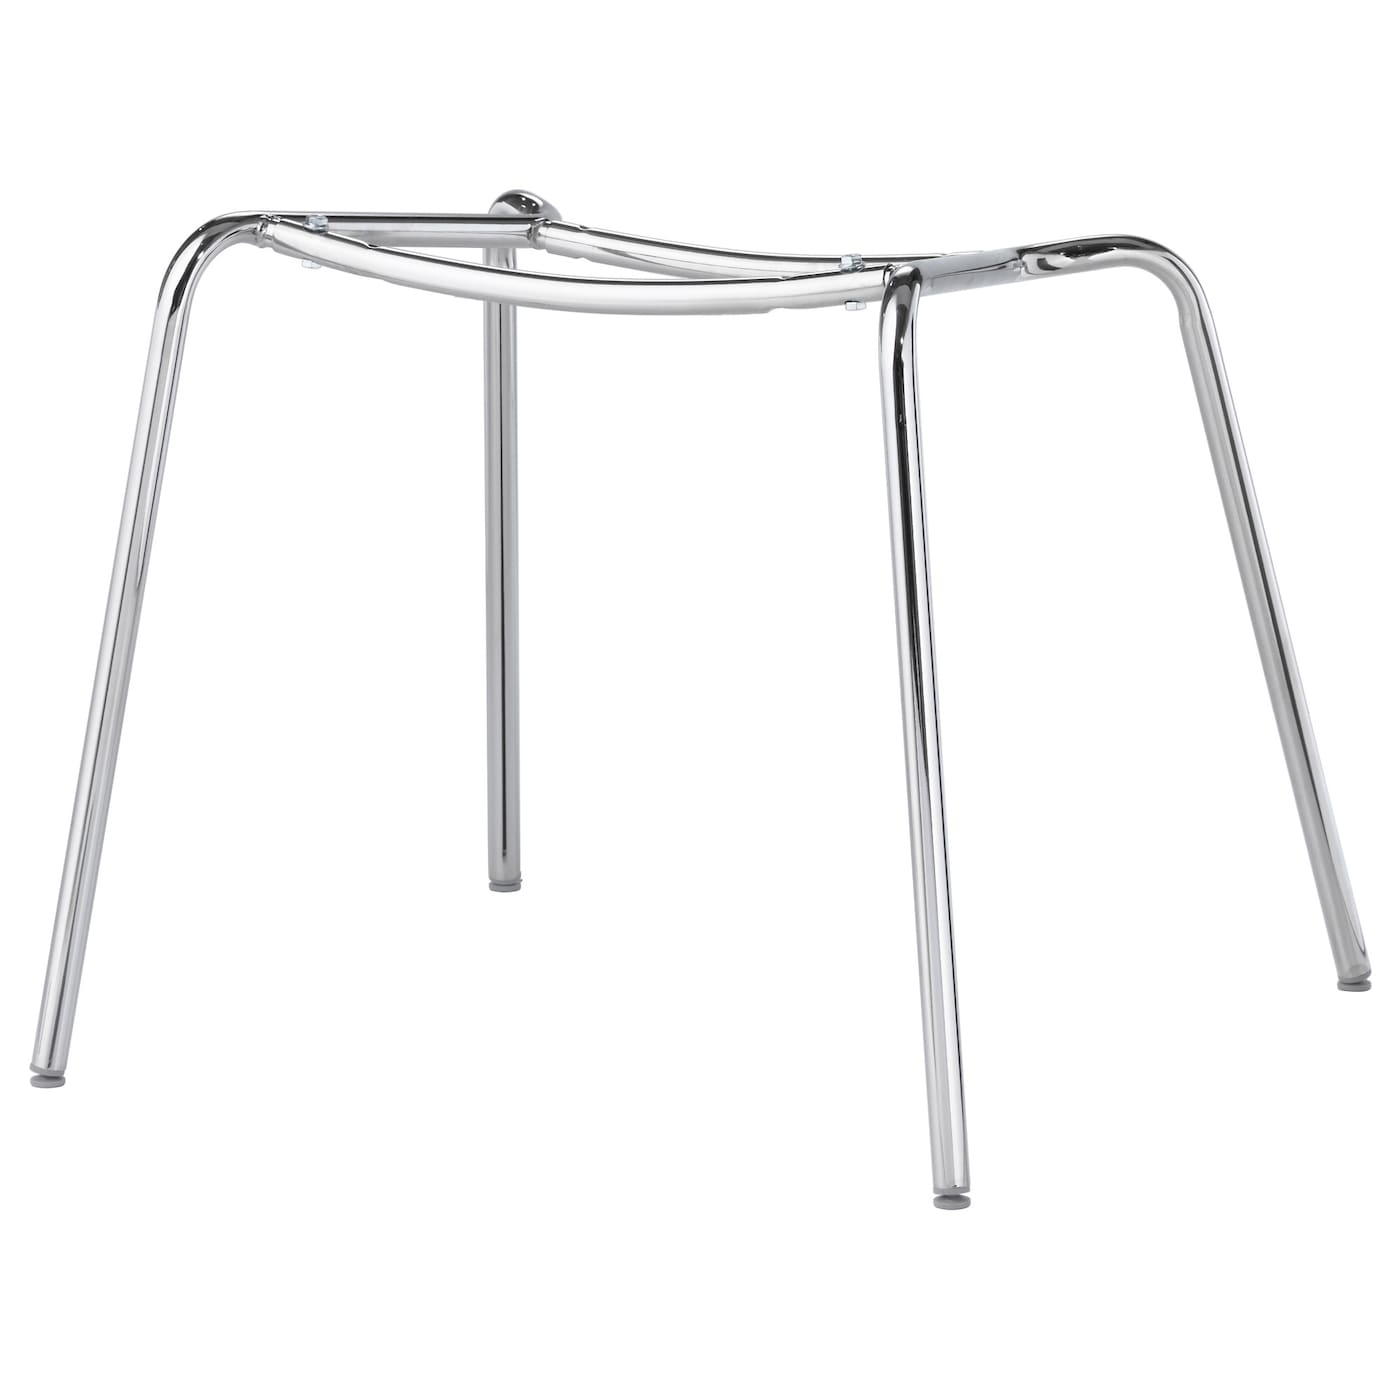 IKEA BRORINGE underframe The dampers allow you to stack the chairs.